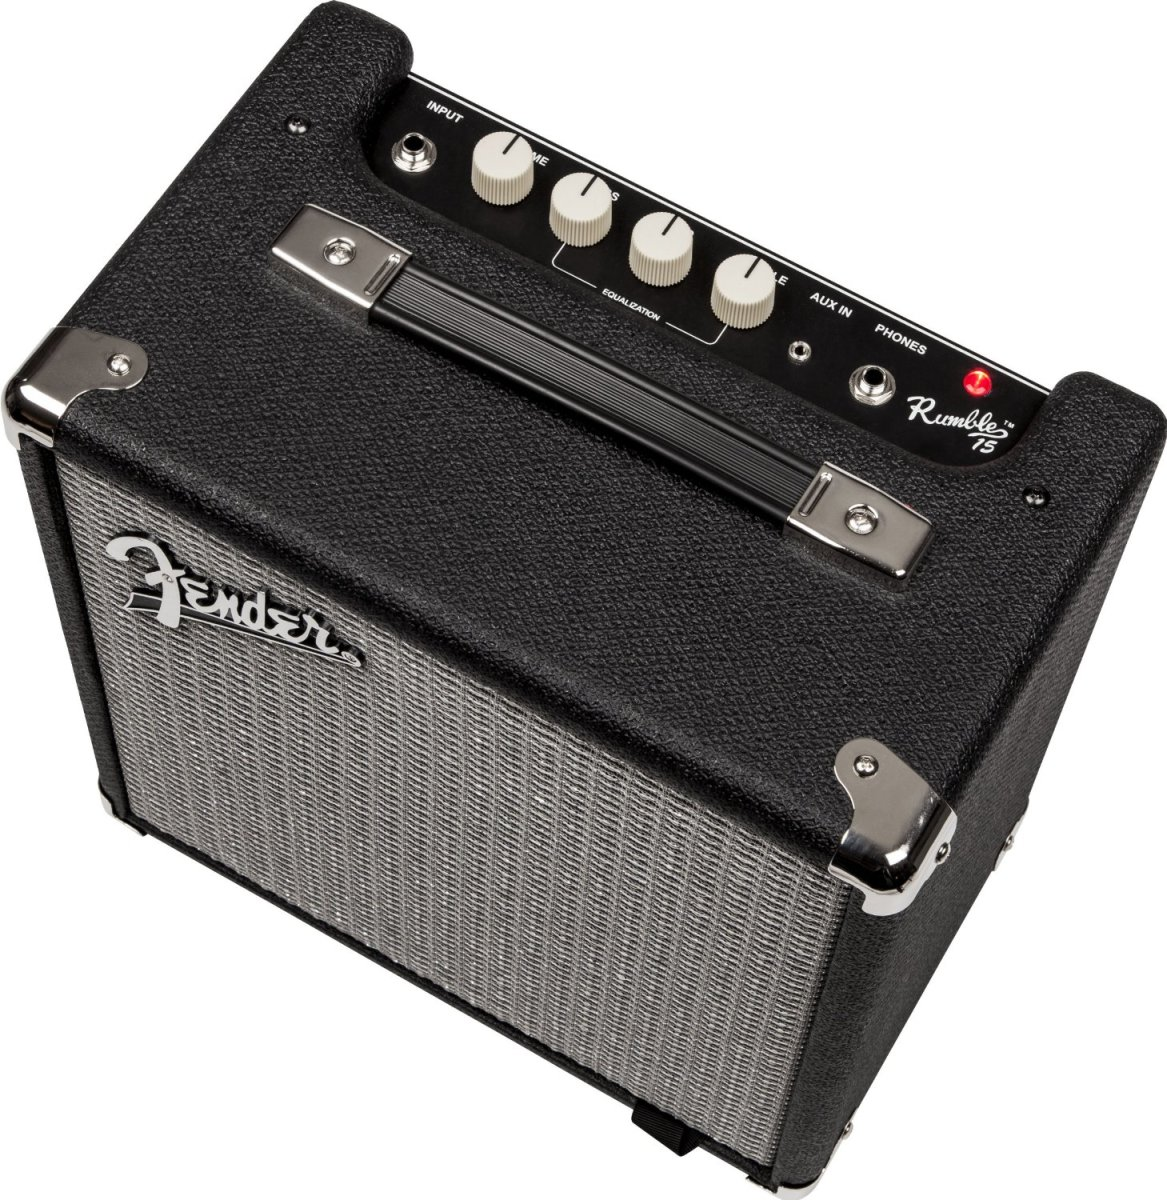 Fender Rumble 15 v3 Bass Practice Amp Review